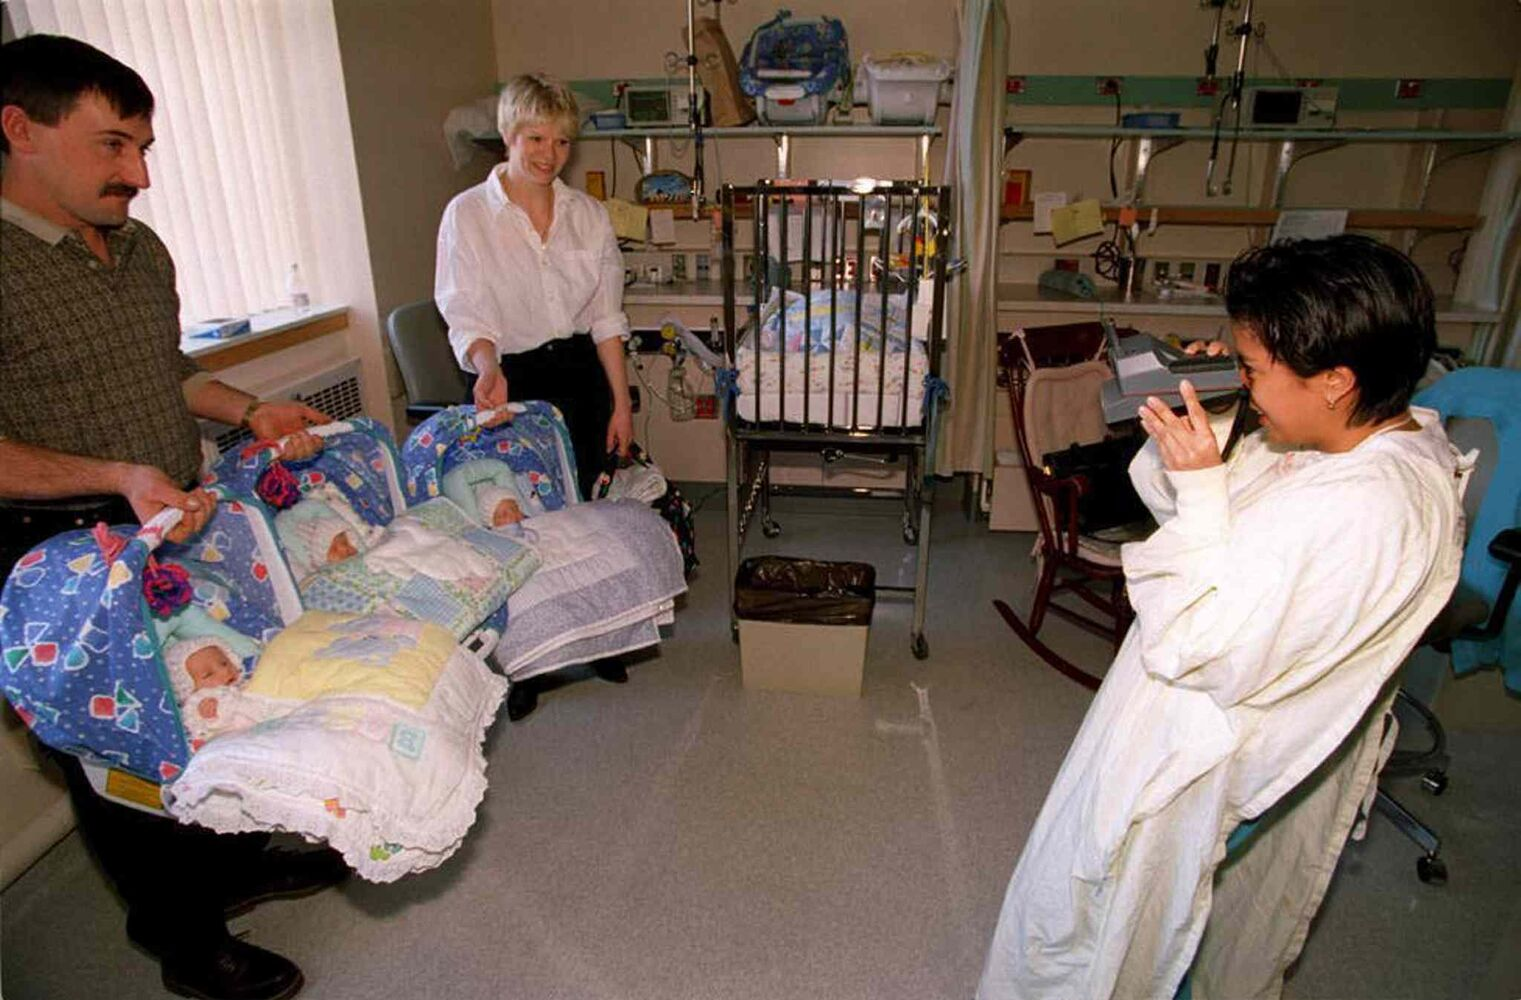 Three of the four quadruplets are discharged from the hospital in early October 1996. Nurse Jennifer Ponce, who took care of them, takes a few snaps of Heather and Ed Lavich with the three just before they leave. The fourth quadruplet, Myles, stays behind for a few more days.